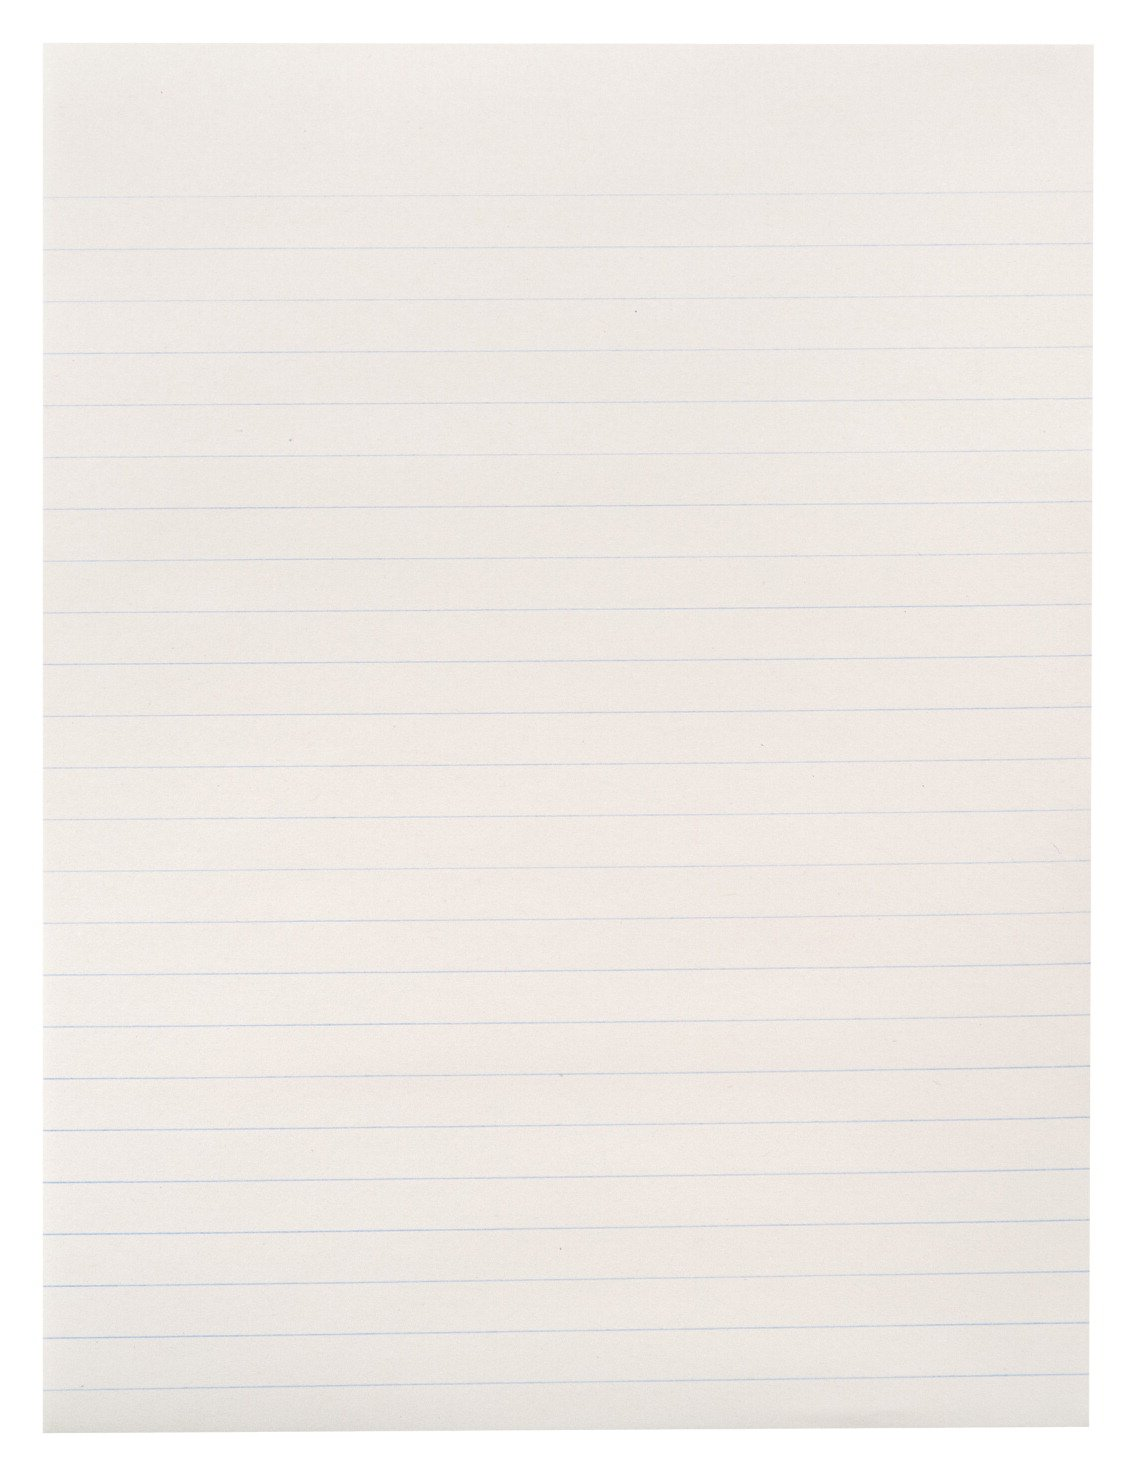 School Smart California Approved Newsprint Theme Paper - 8 in x 10 1/2 in - Ream of 500 - White